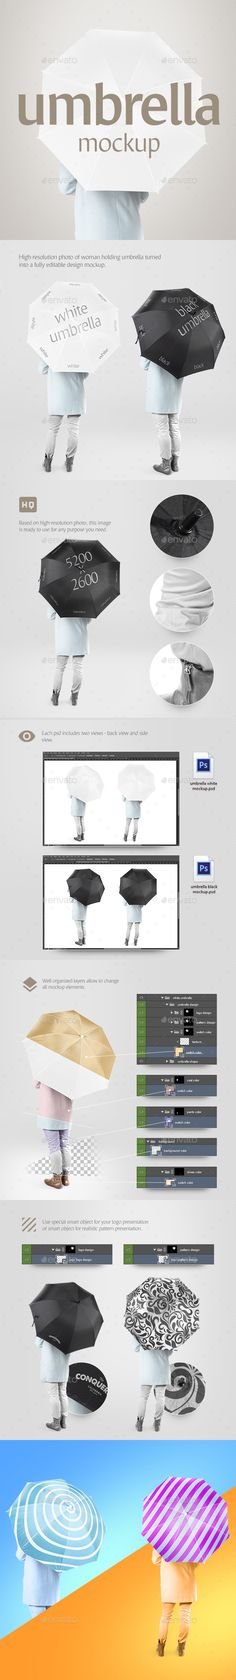 Umbrella Mockup by rebrandy Product includes:psd with white umbrella ready, back view and side view (each photo 5200 Ñ… 2600 px, 300 dpi)